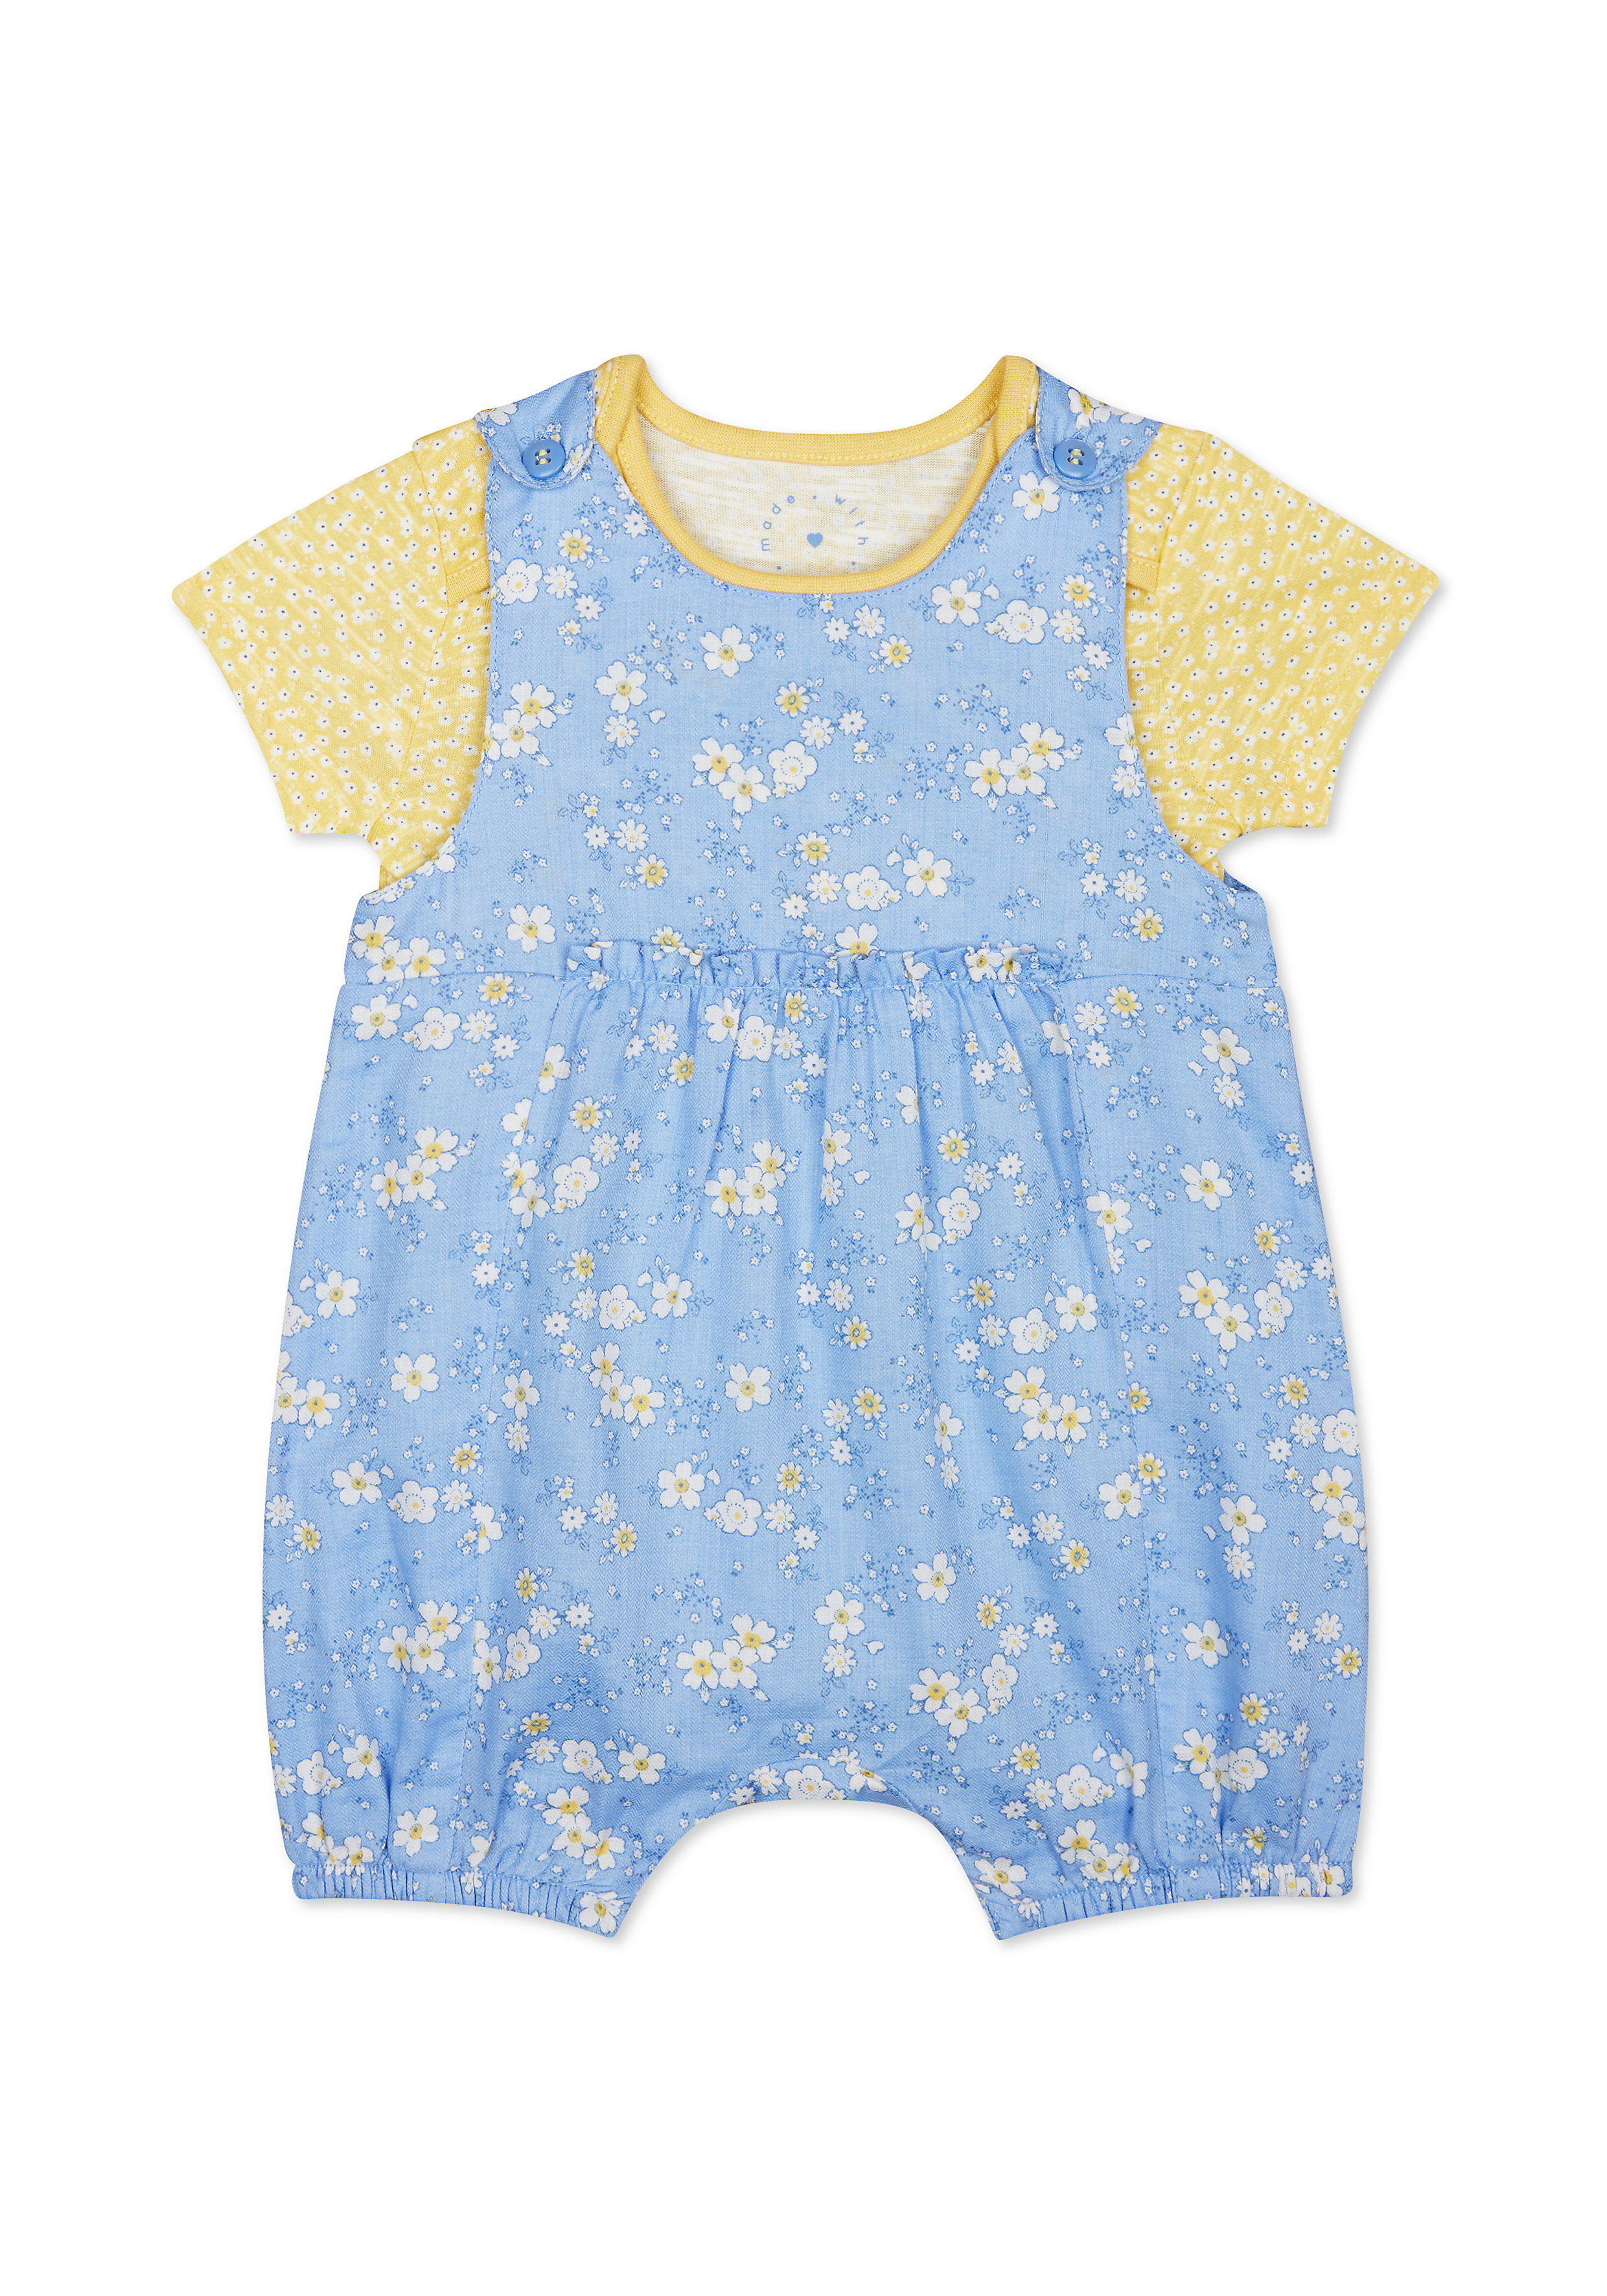 Mothercare | Girls Half Sleeves Dungaree Set Floral Print - Blue Yellow